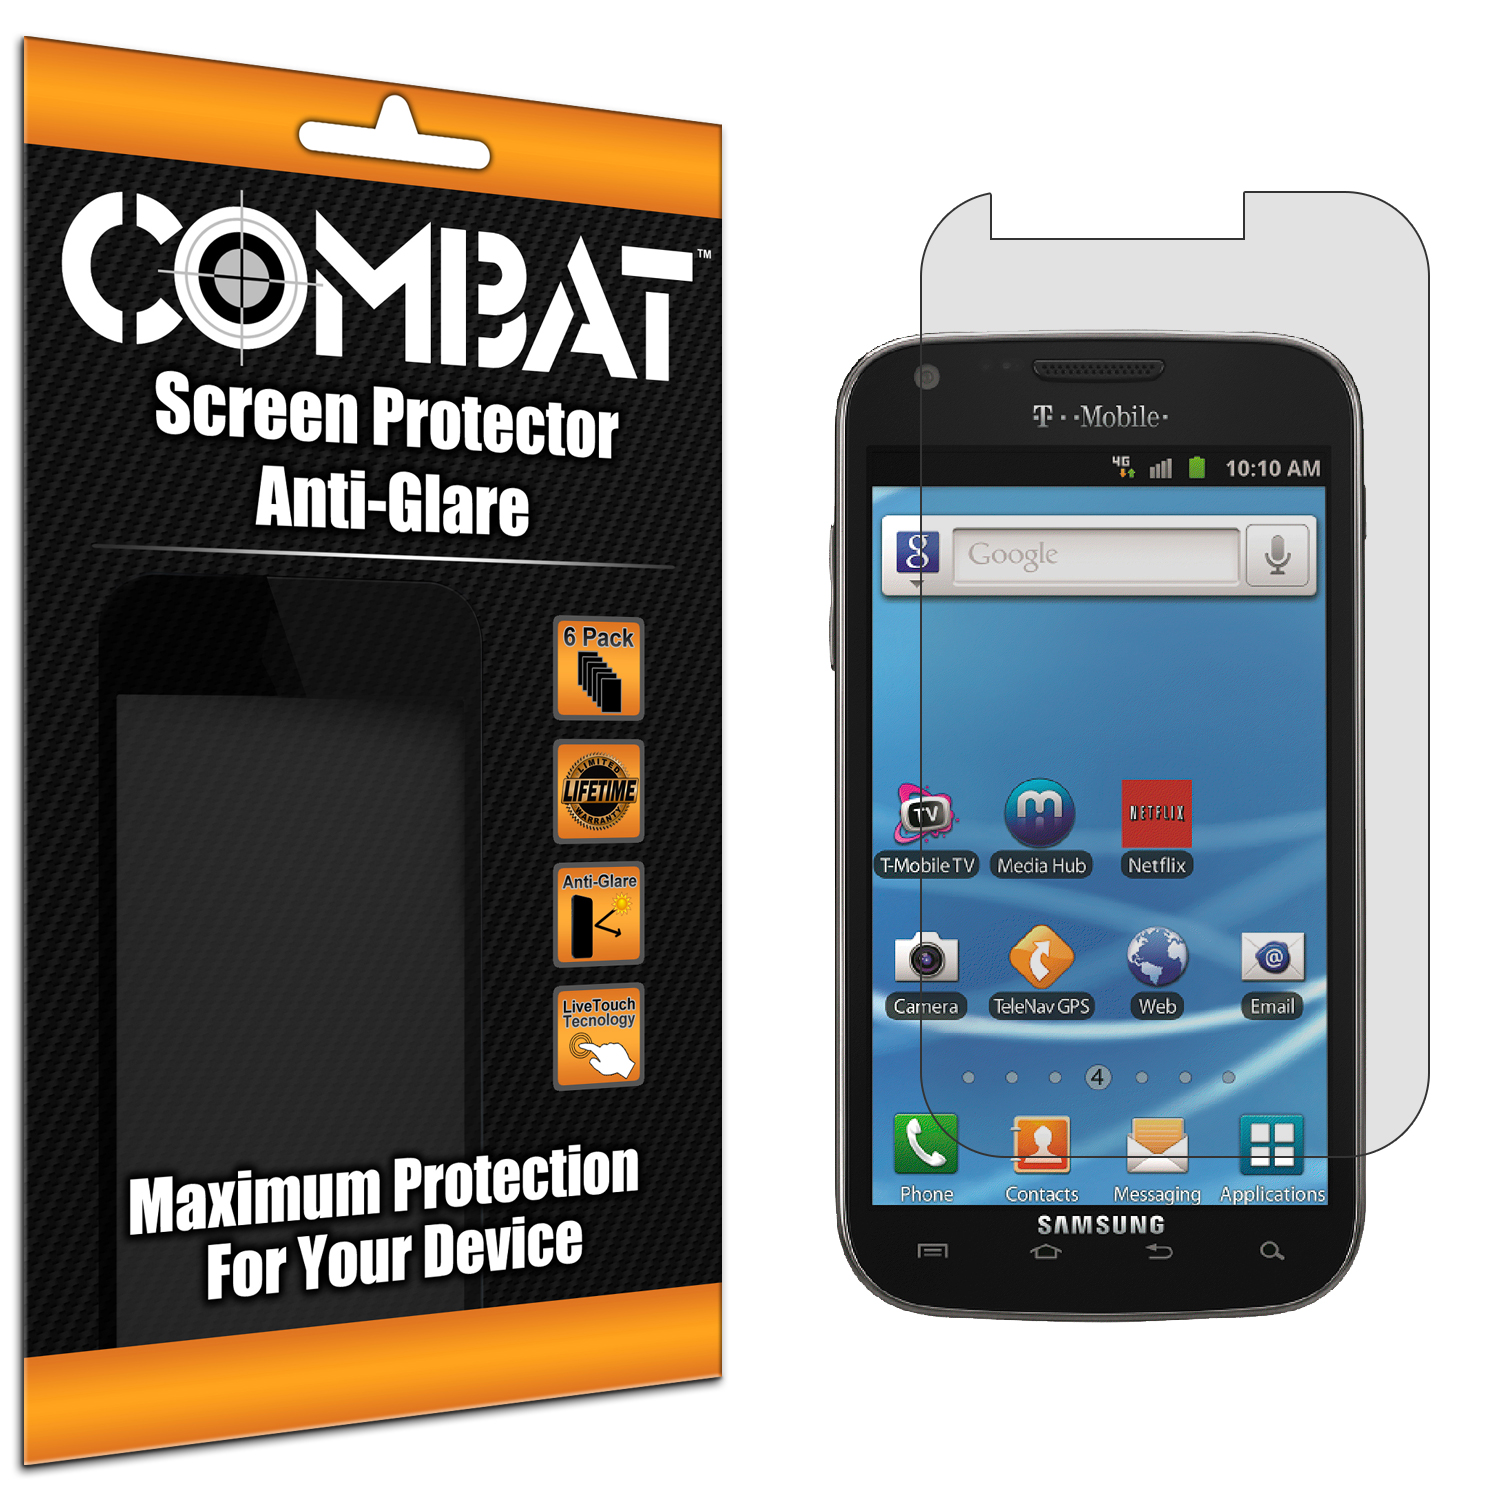 Samsung Hercules T989 T-Mobile Galaxy S2 Combat 6 Pack Anti-Glare Matte Screen Protector